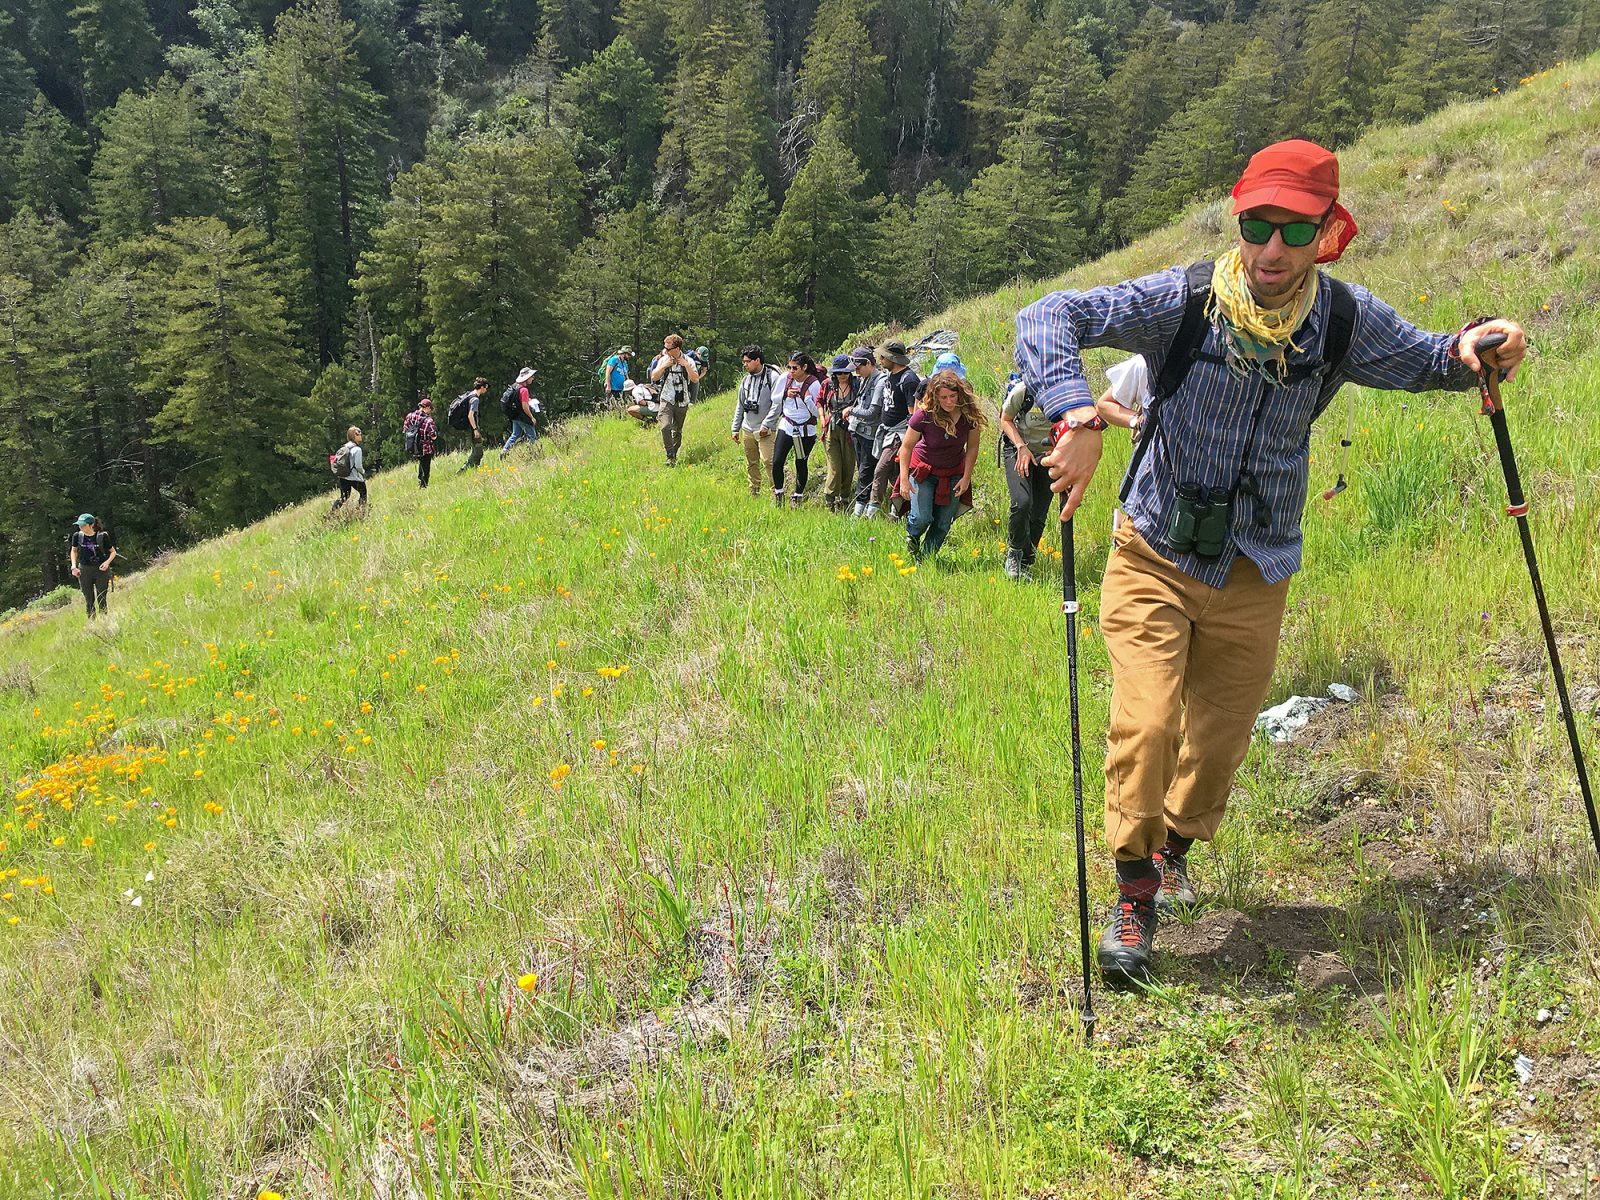 Research shows field courses bridge STEM diversity gaps 2